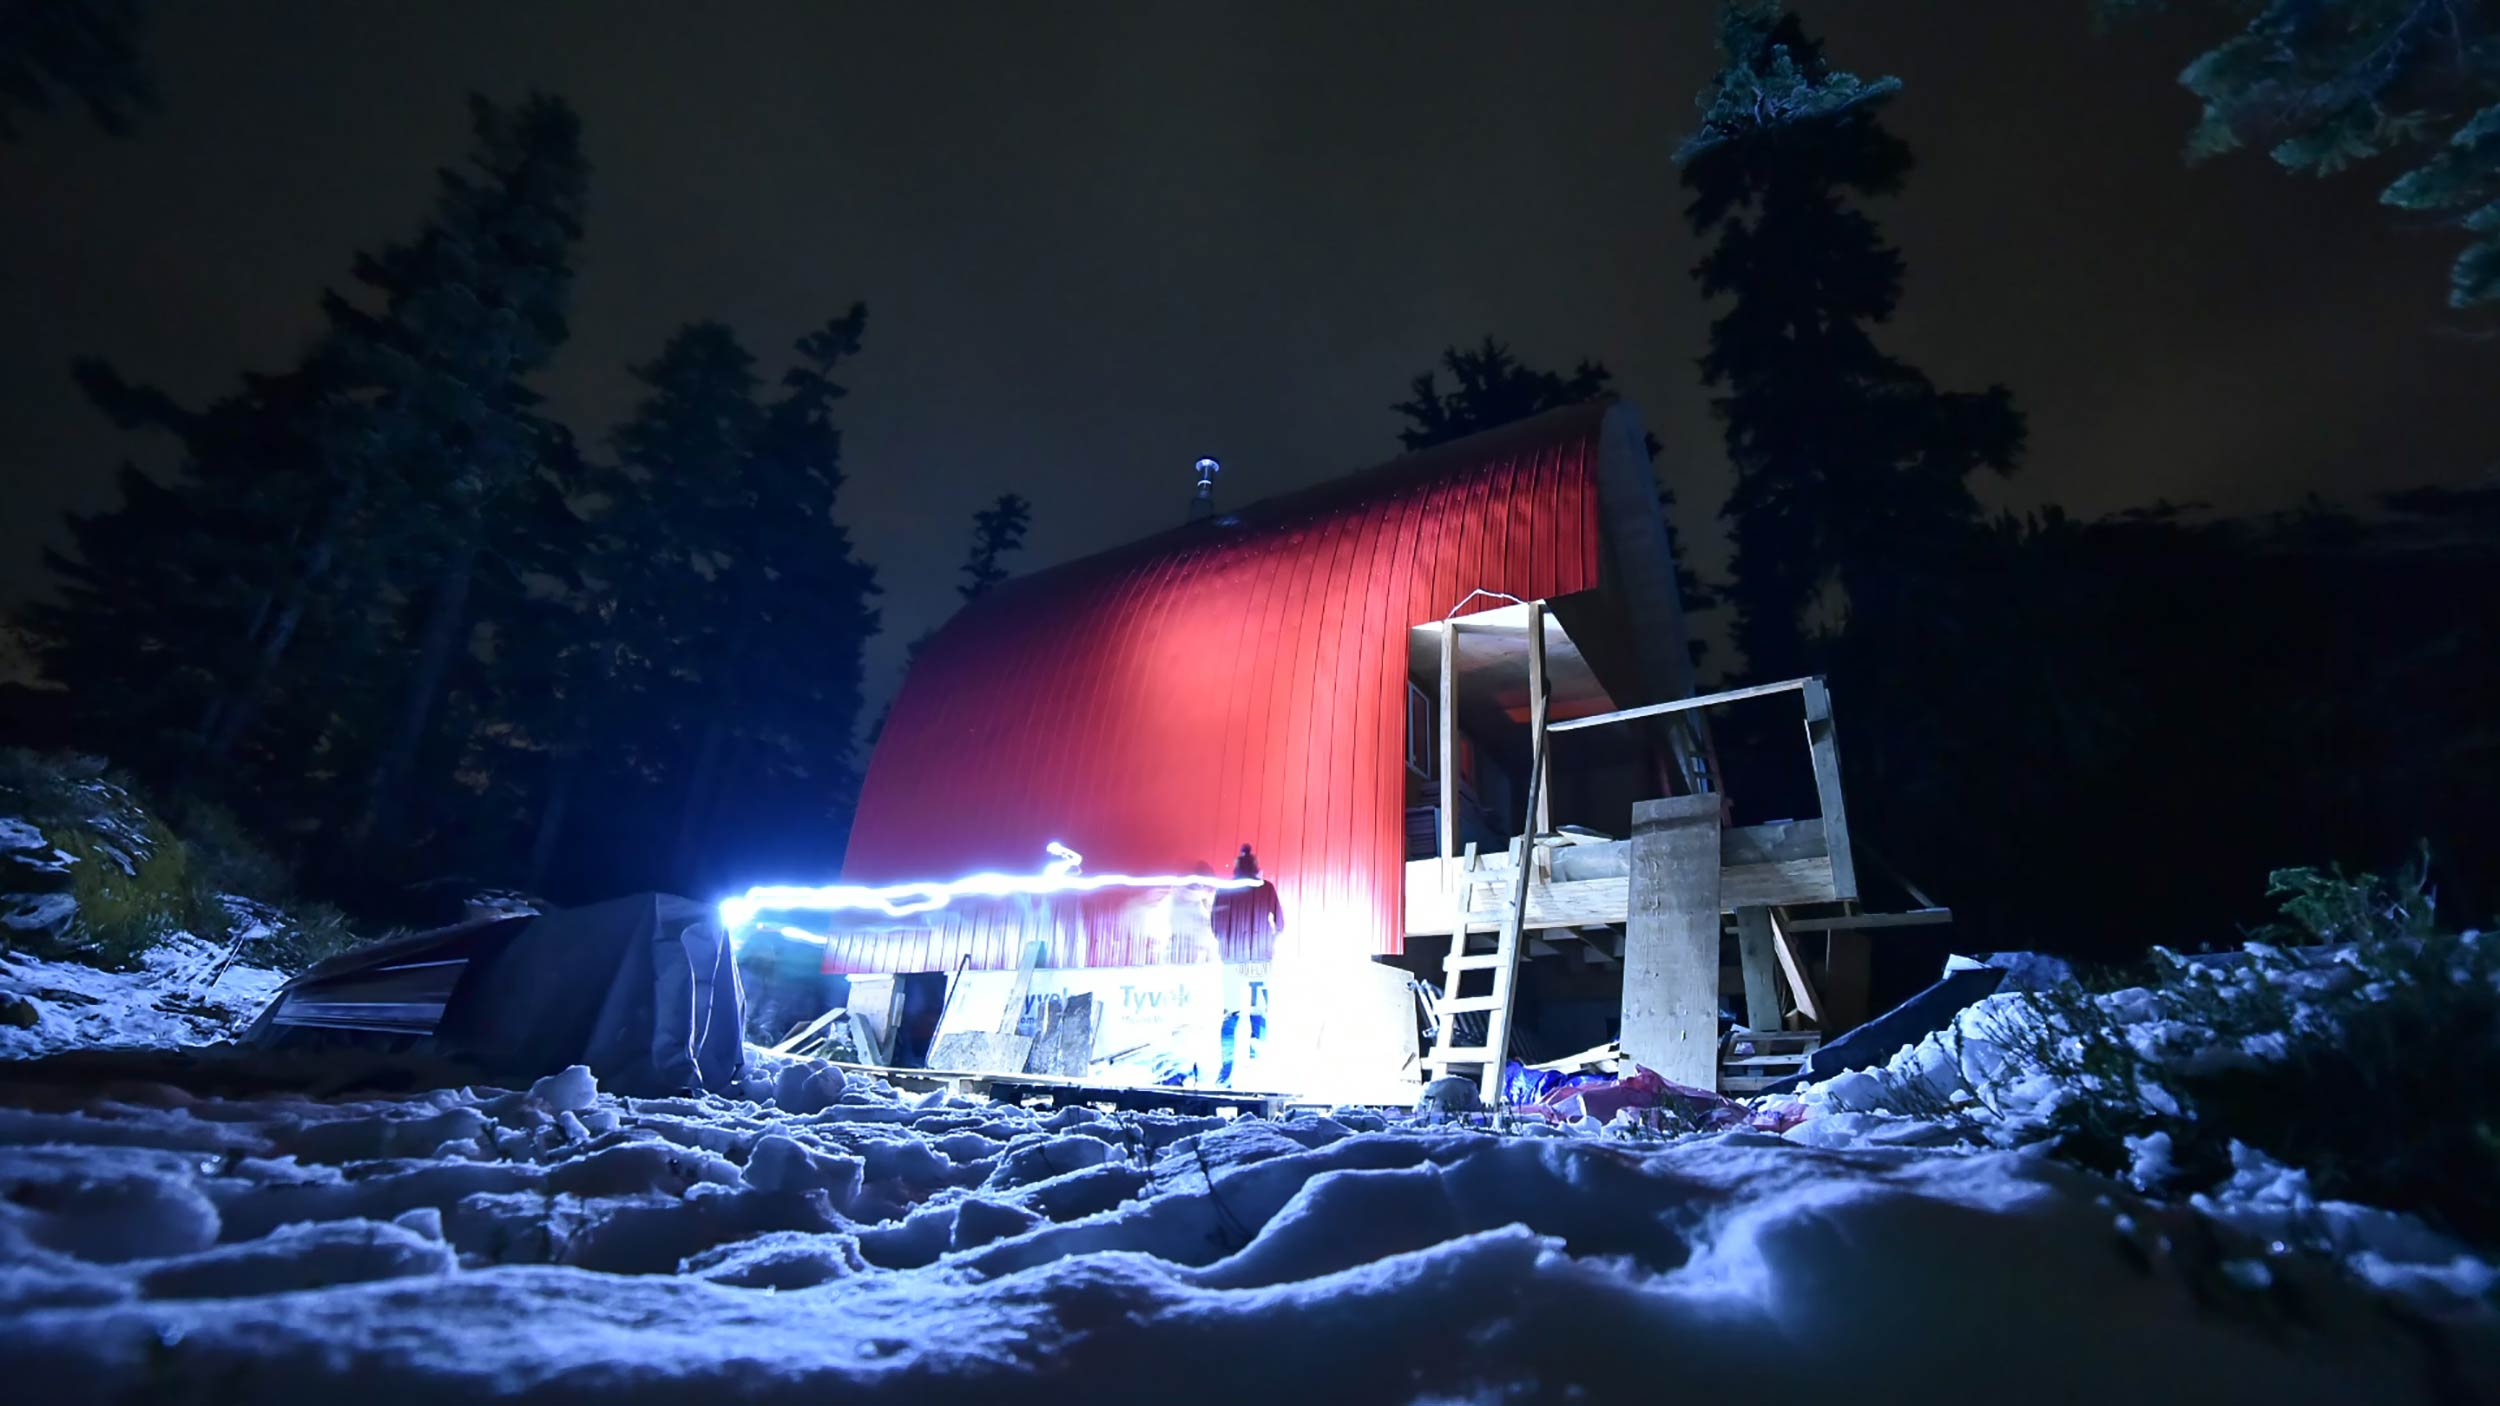 watersprite_lake_hut_bcmc.jpg